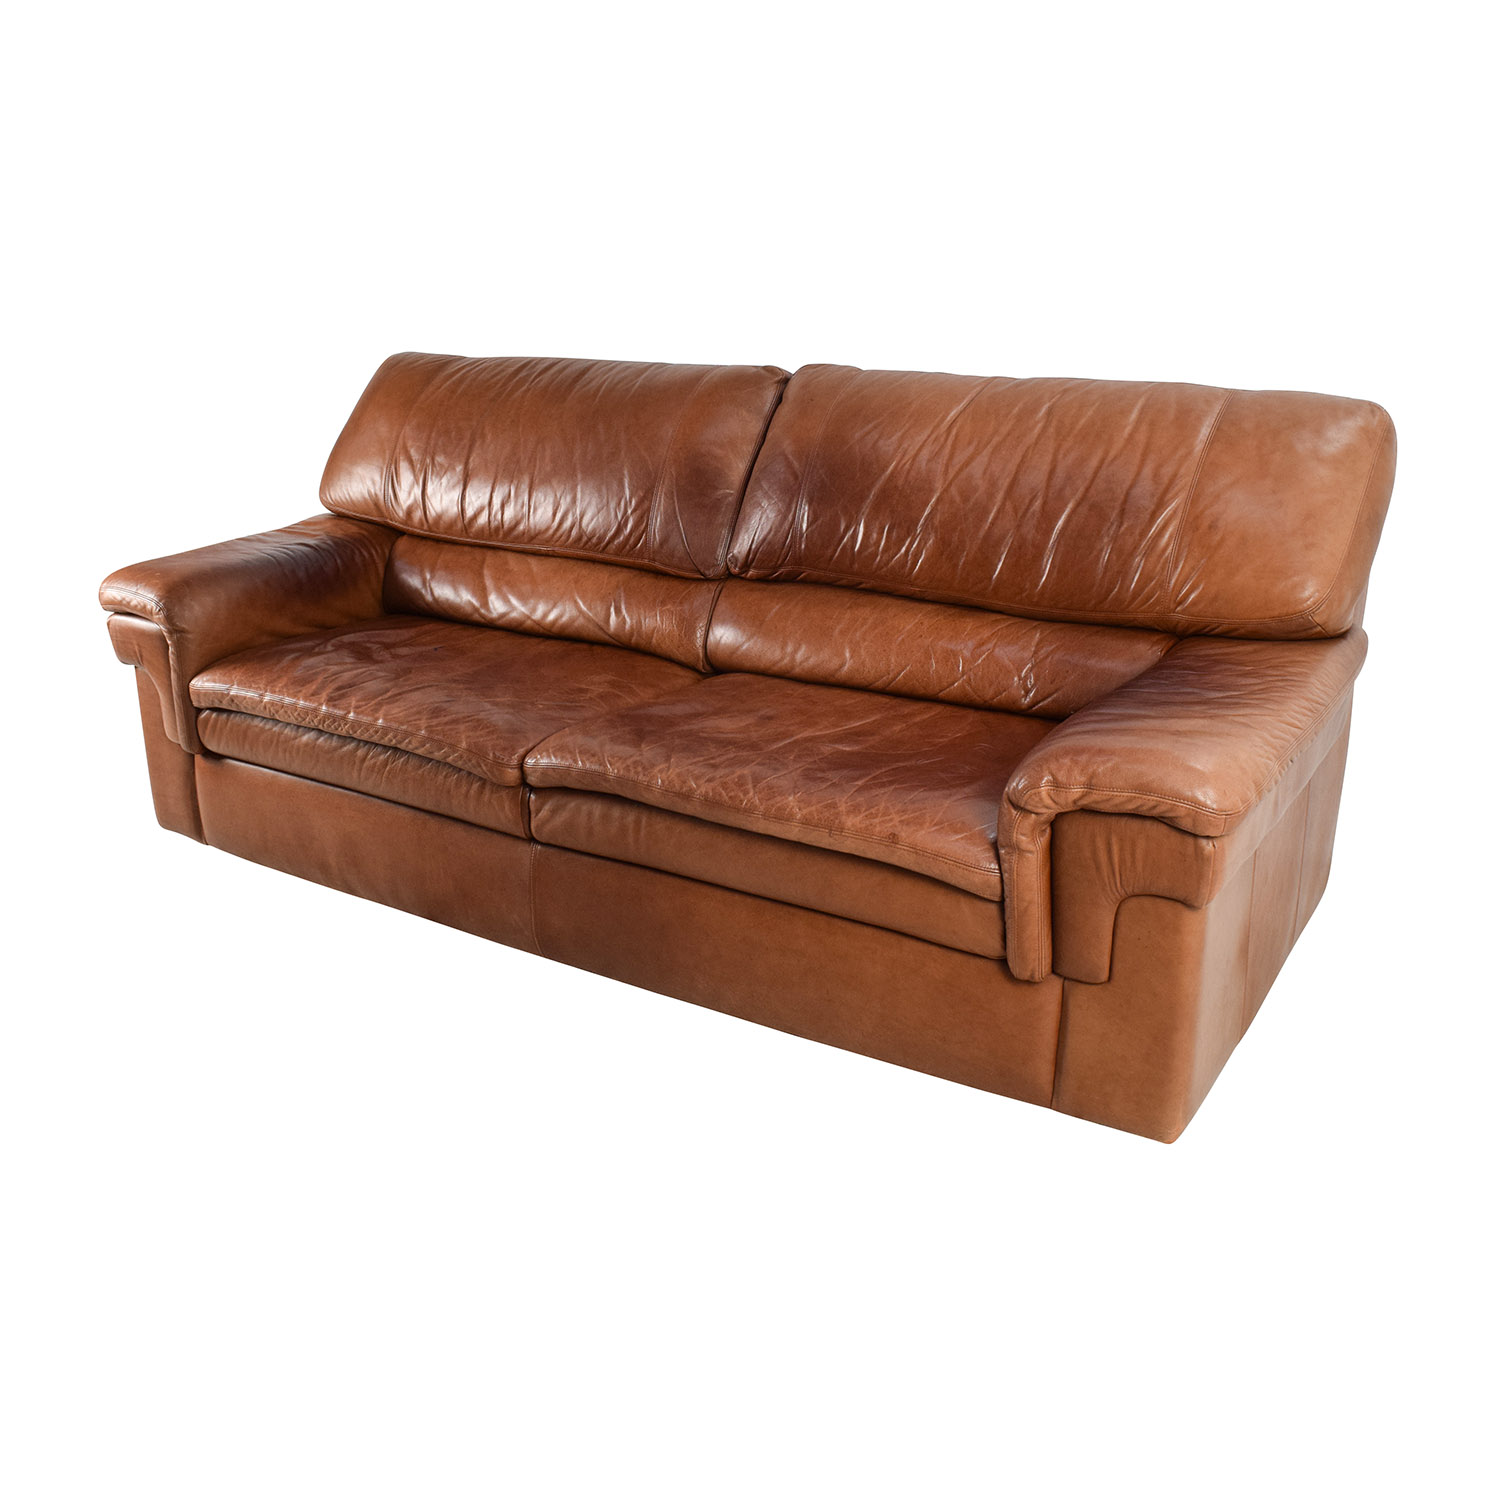 71 off classic cherry brown leather sofa sofas for Traditional leather furniture